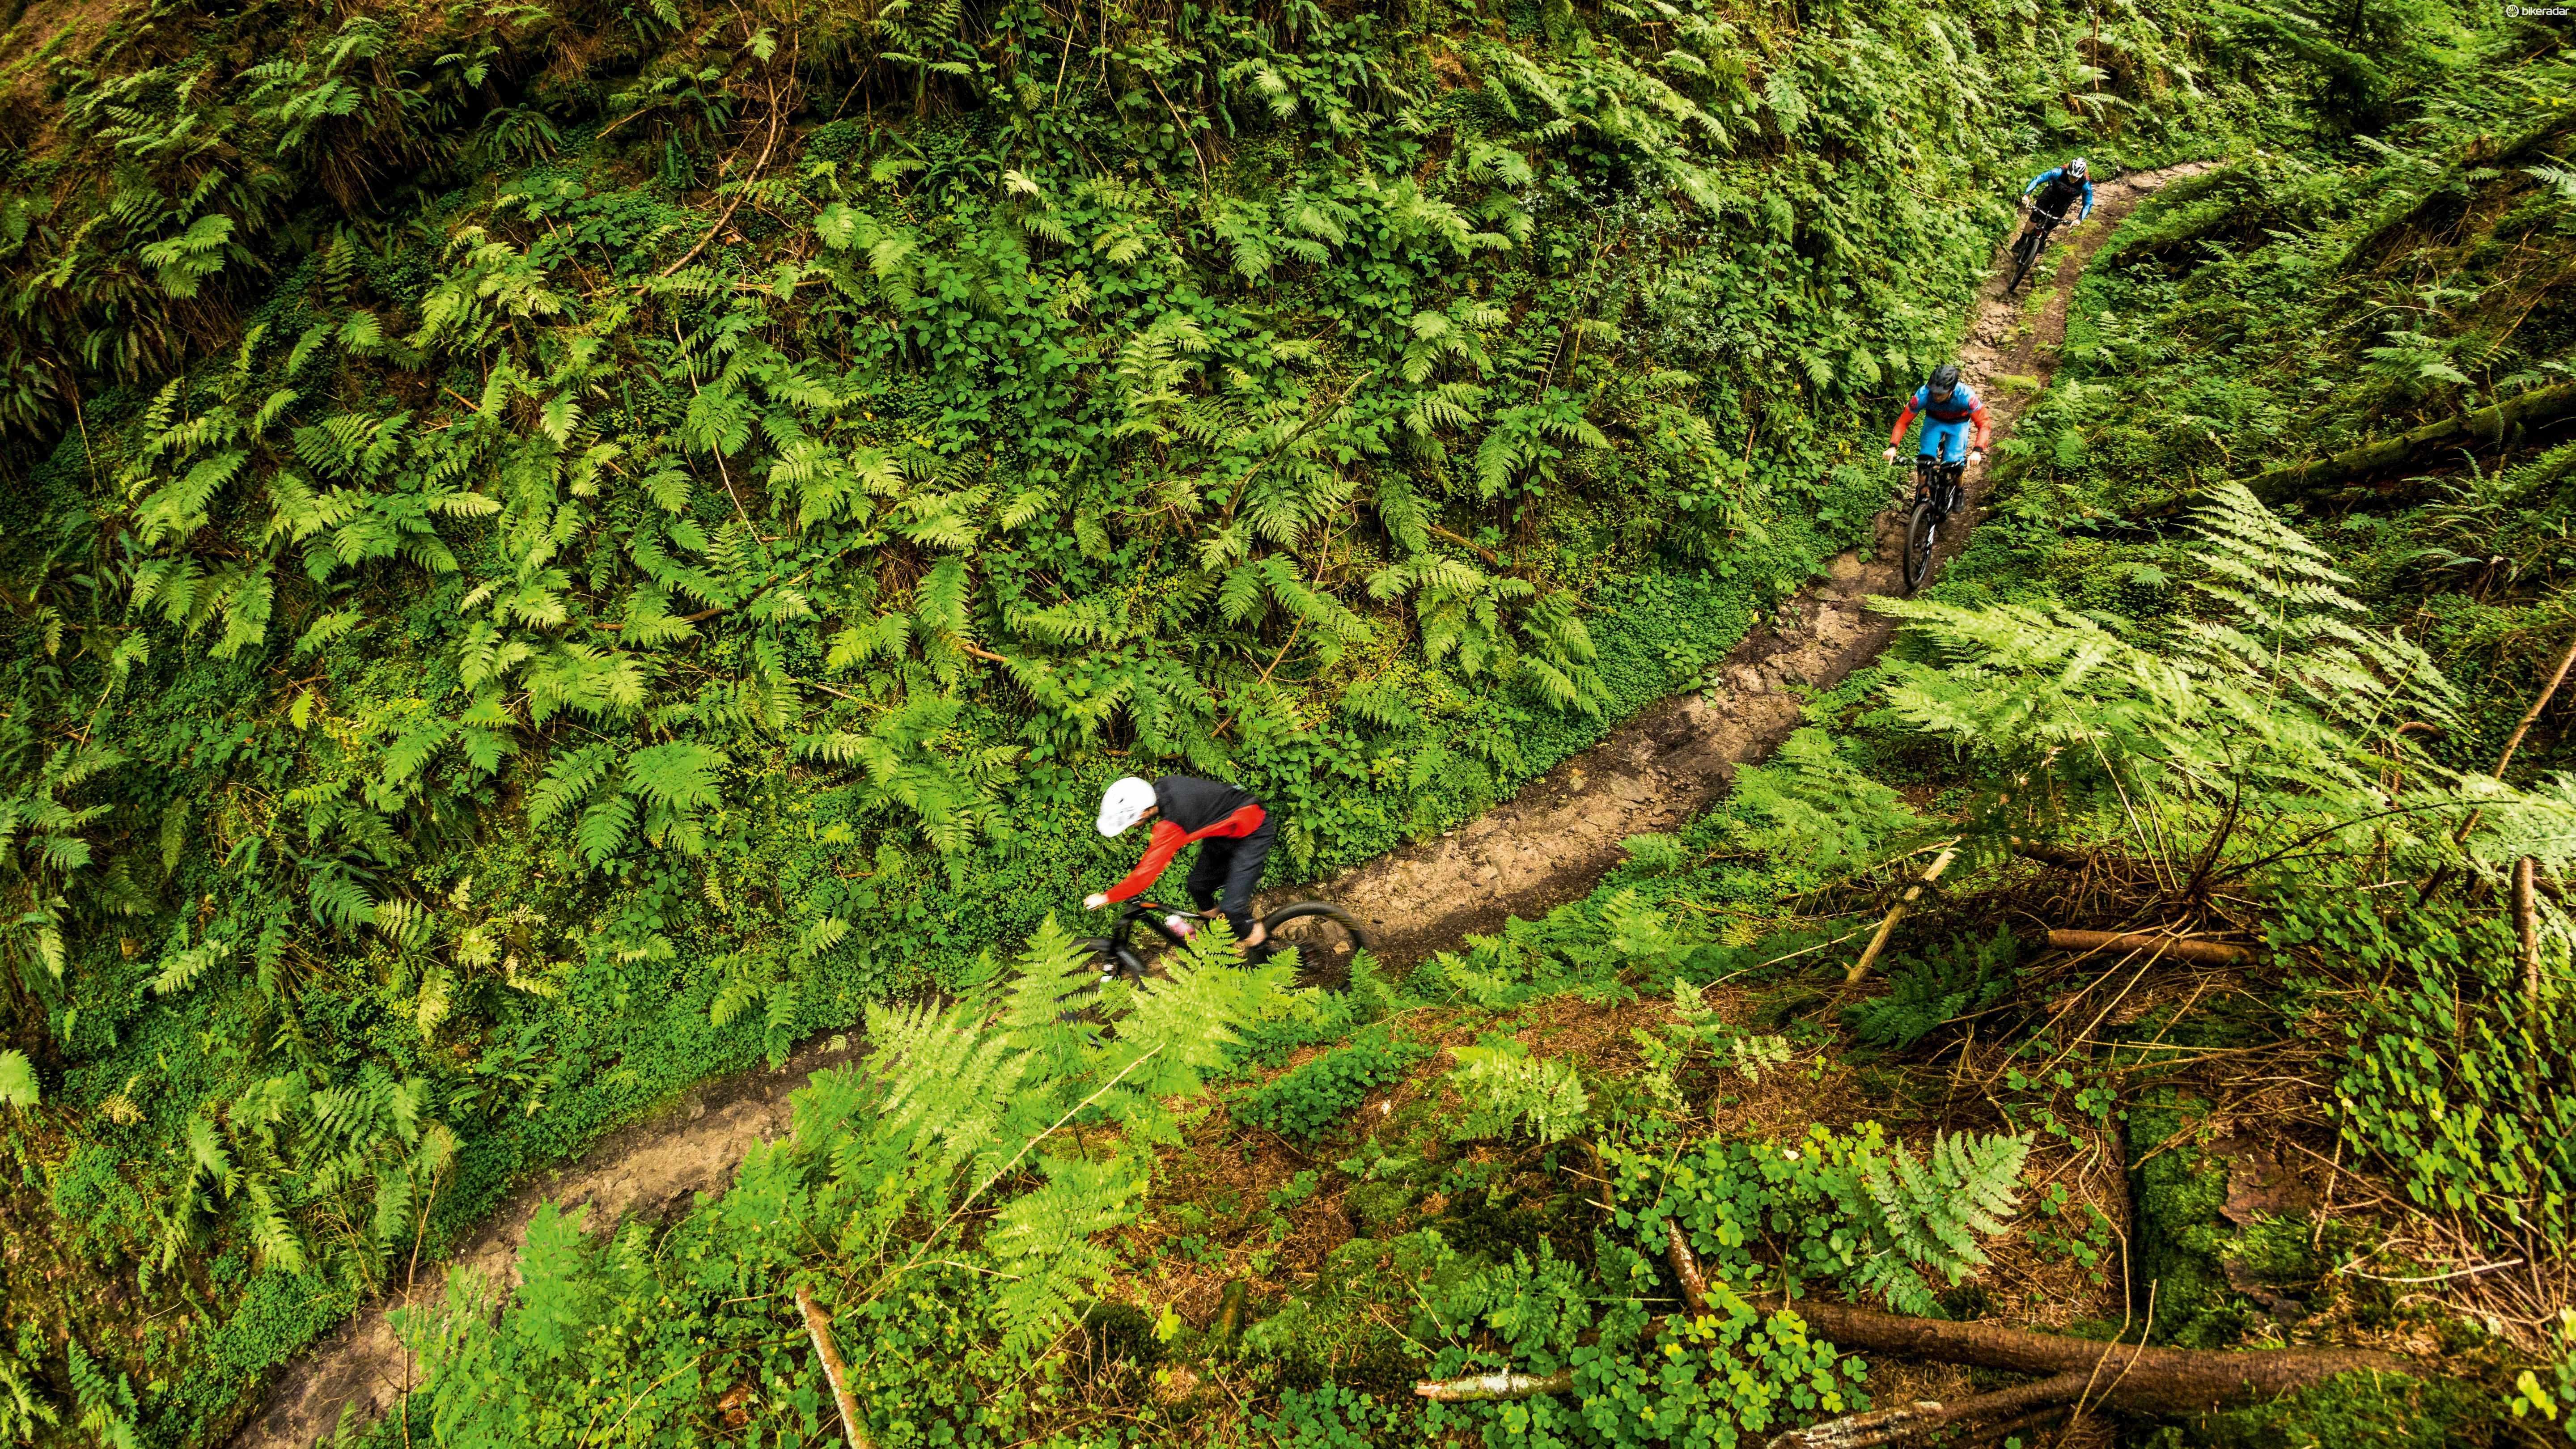 Dalby is one of the biggest trail centres in England, so you won't be bored